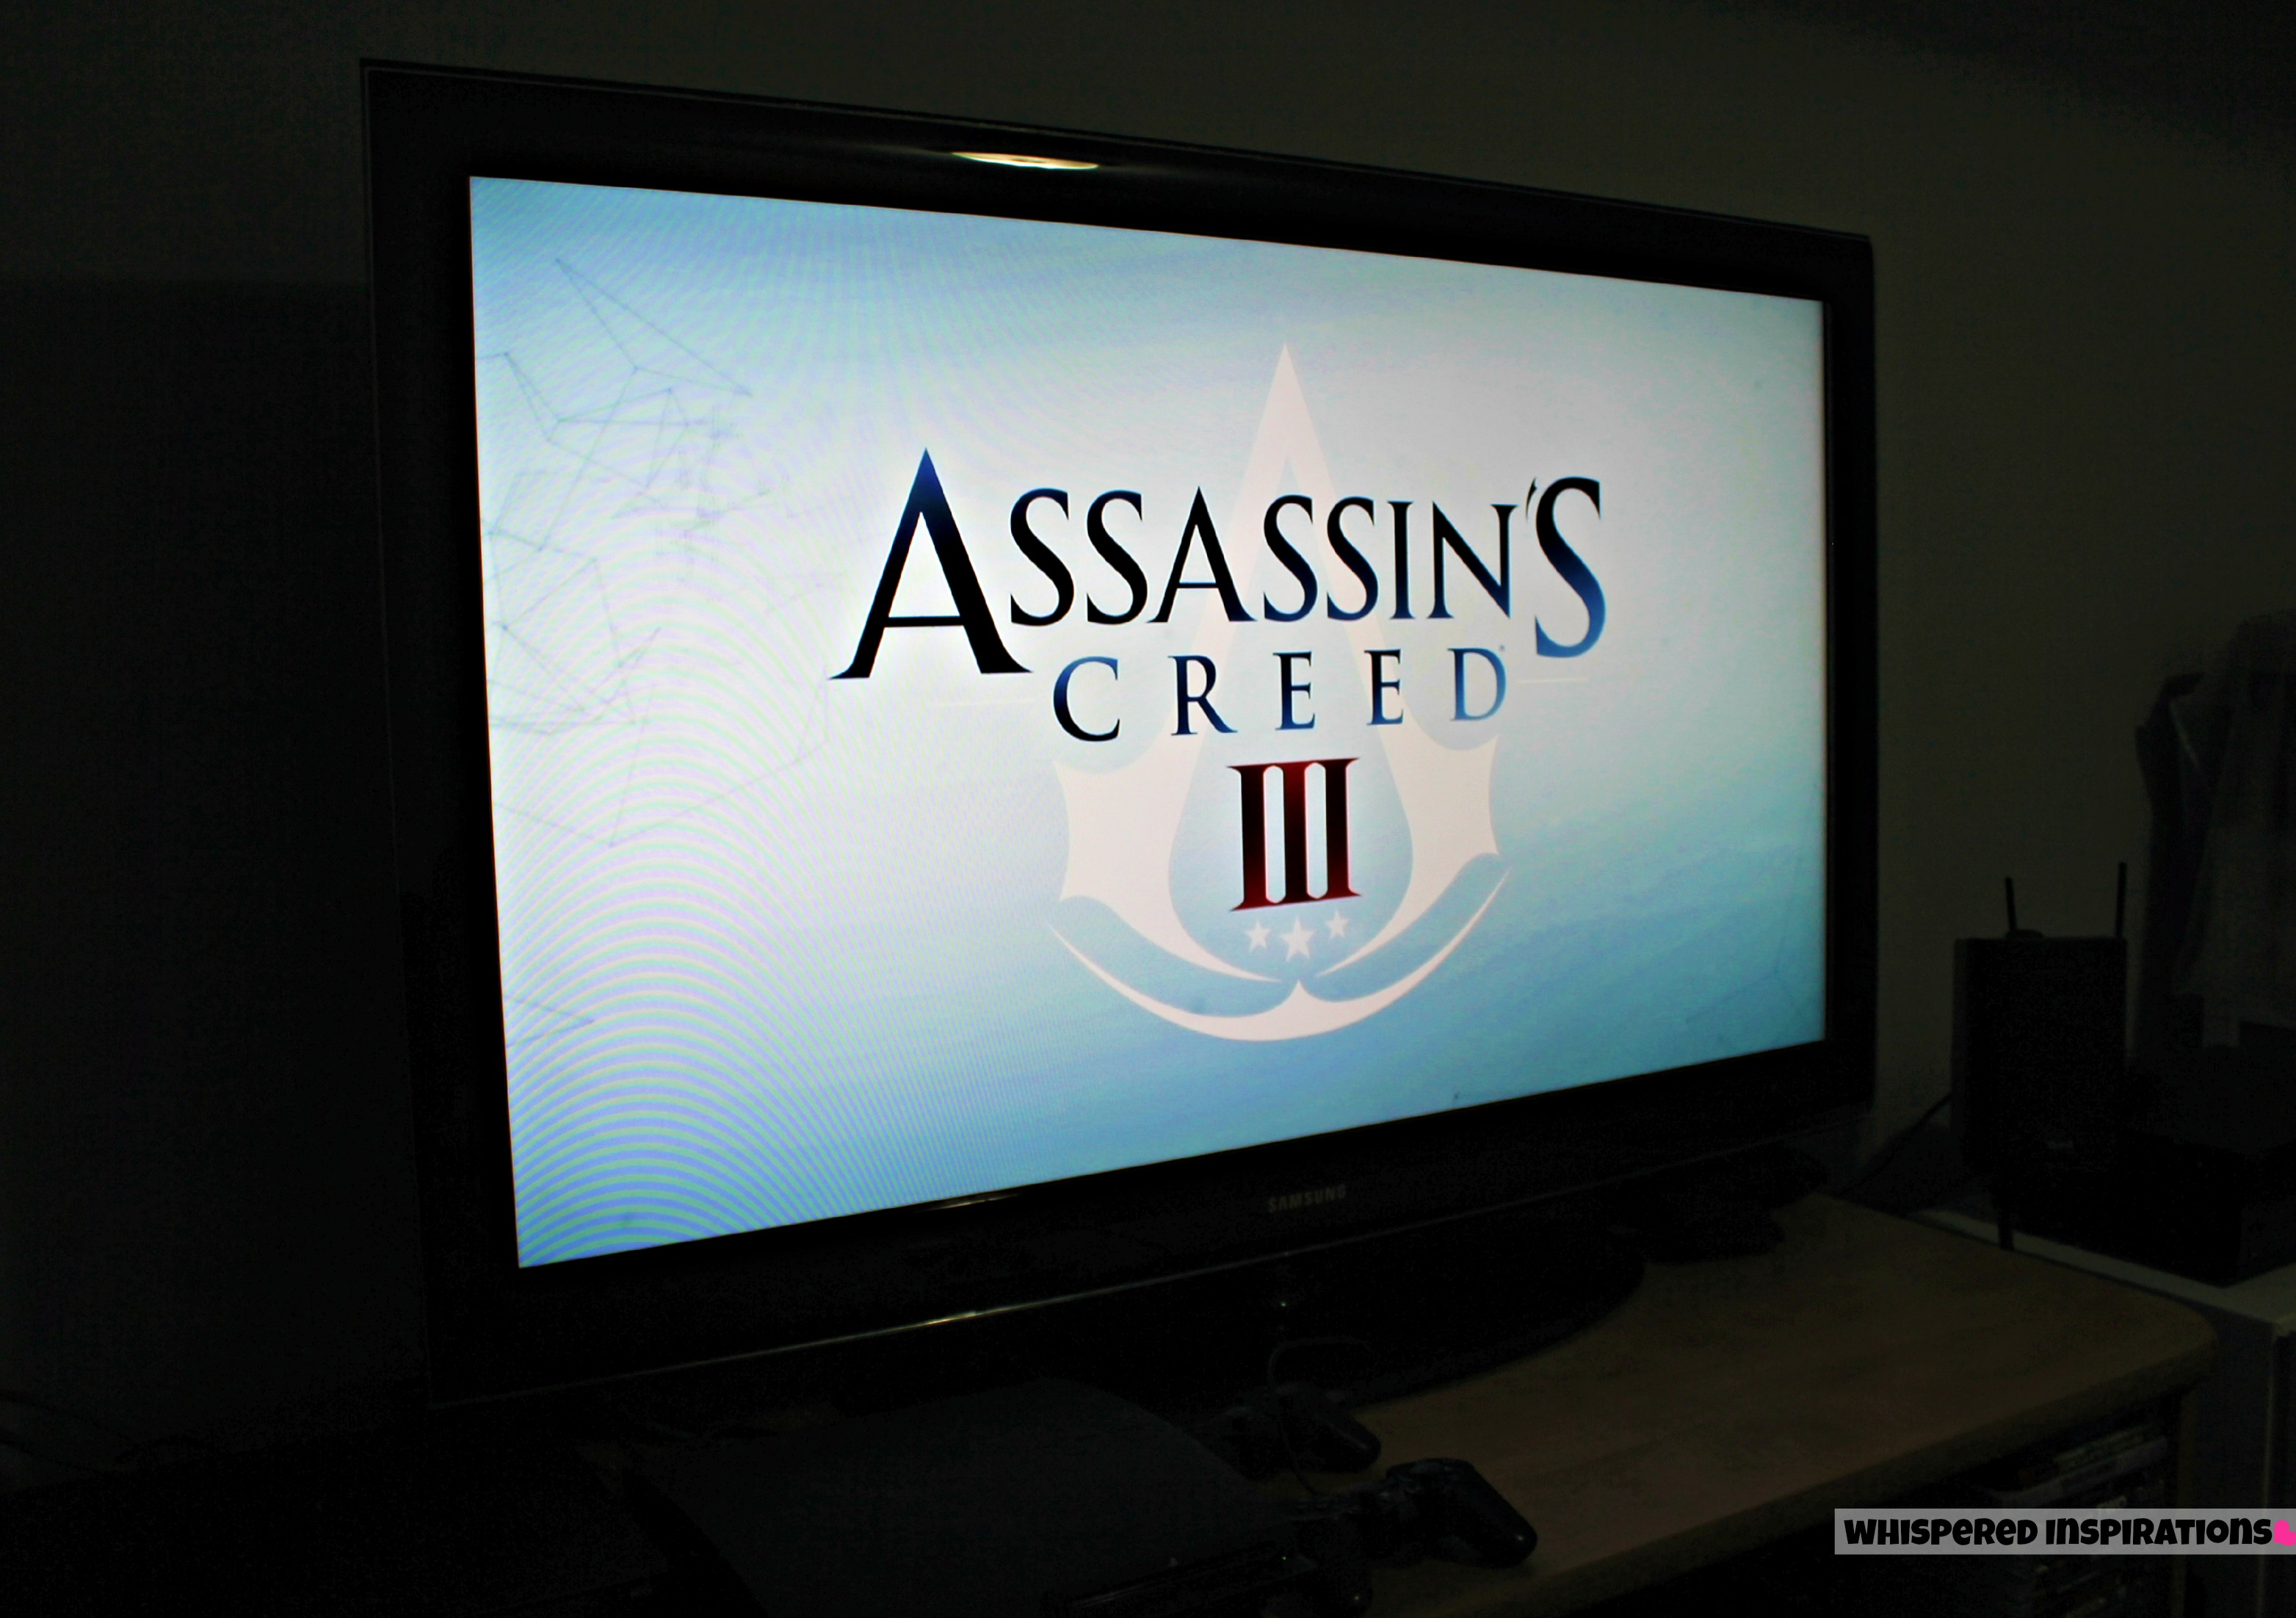 Assassin's Creed 3 is the Amazon Gold Box Deal of the Day: Formal Gamer Girl Approved, Buy Now for $33.00! #AC3Gold